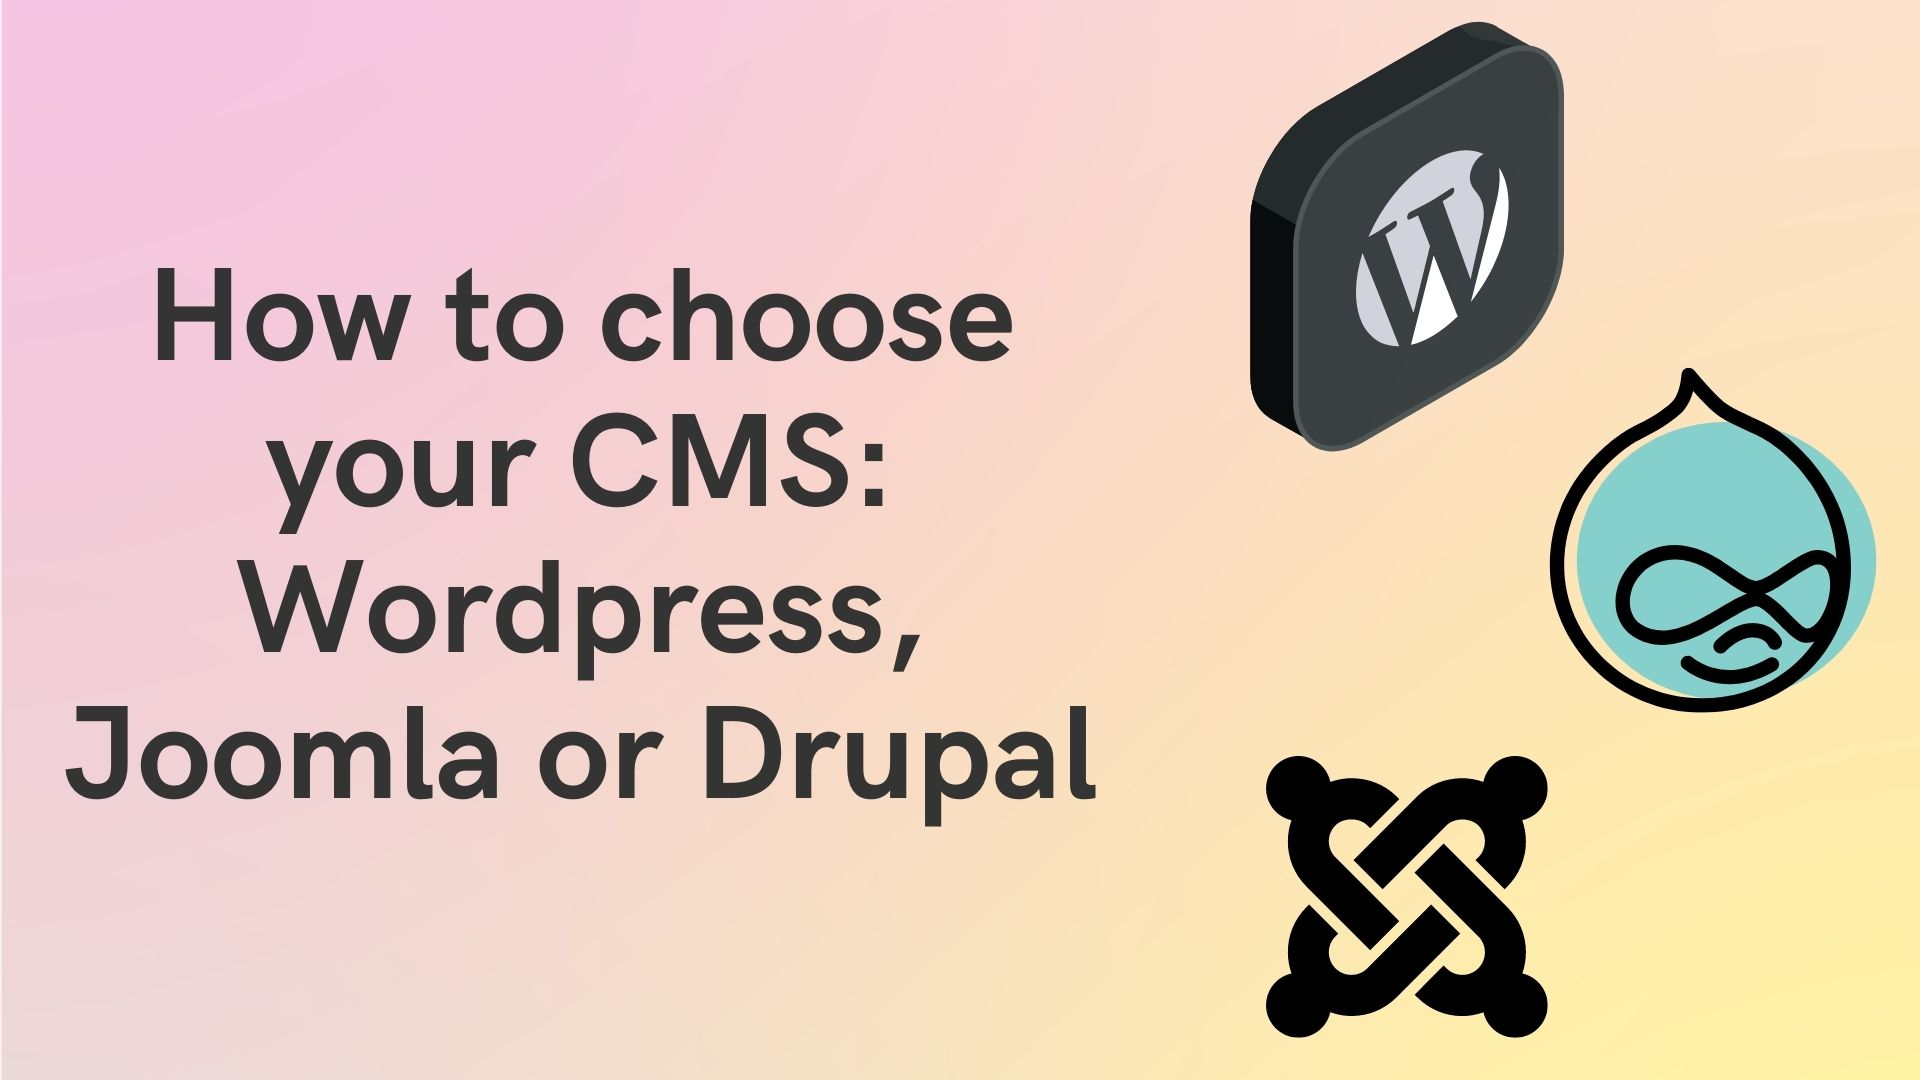 How to choose your CMS: Wordpress, Joomla or Drupal